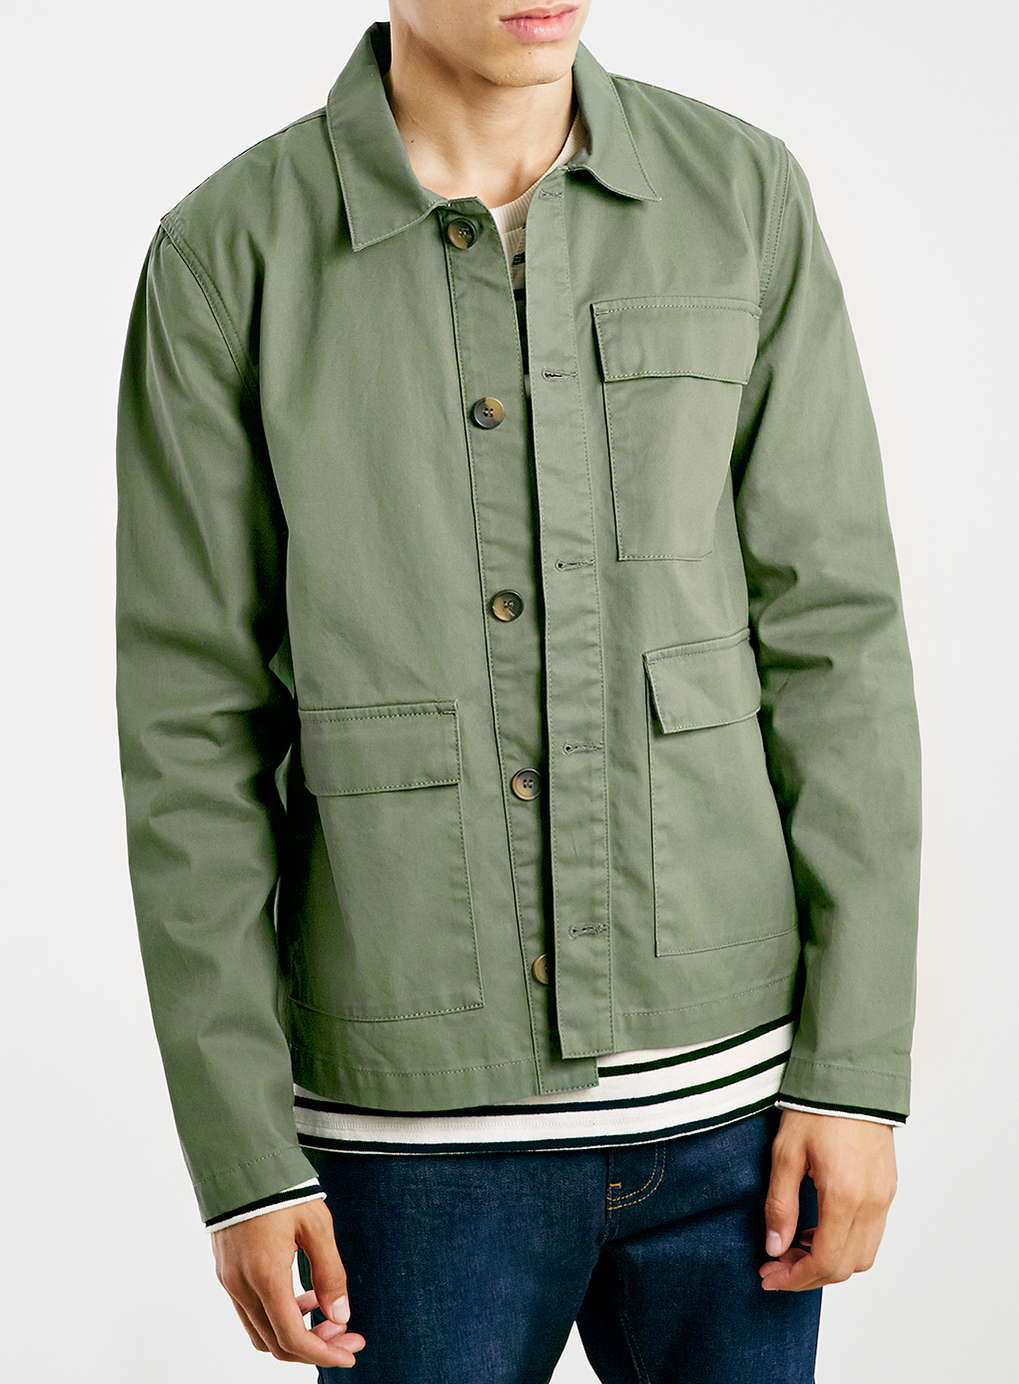 Topman Green Utility Jacket